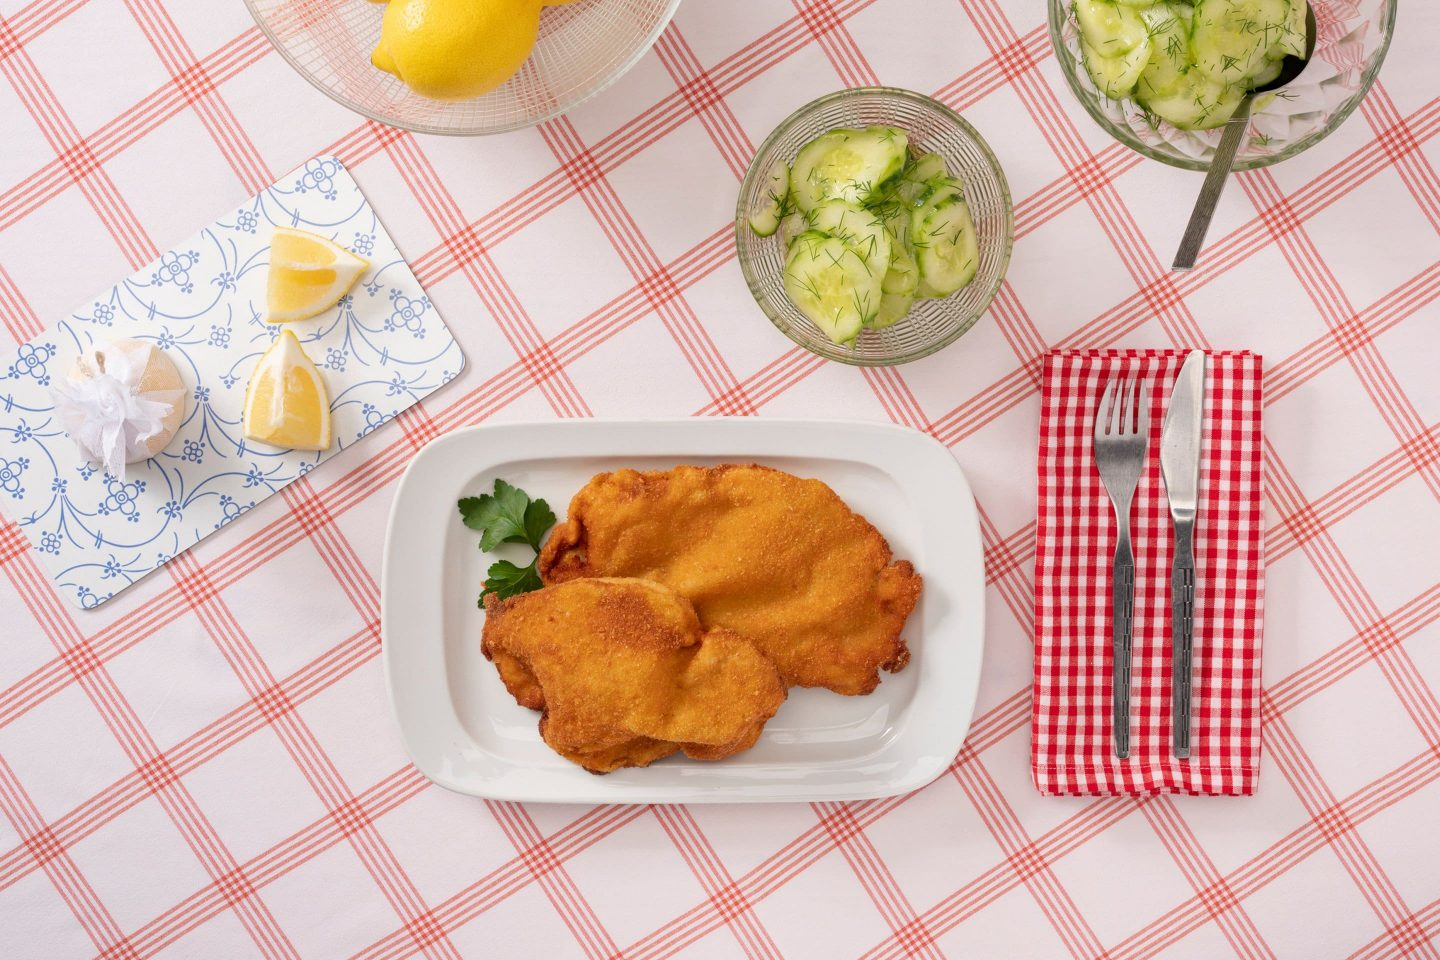 Two Wiener Schnitzel served with a cucumber salad garnished with dill.